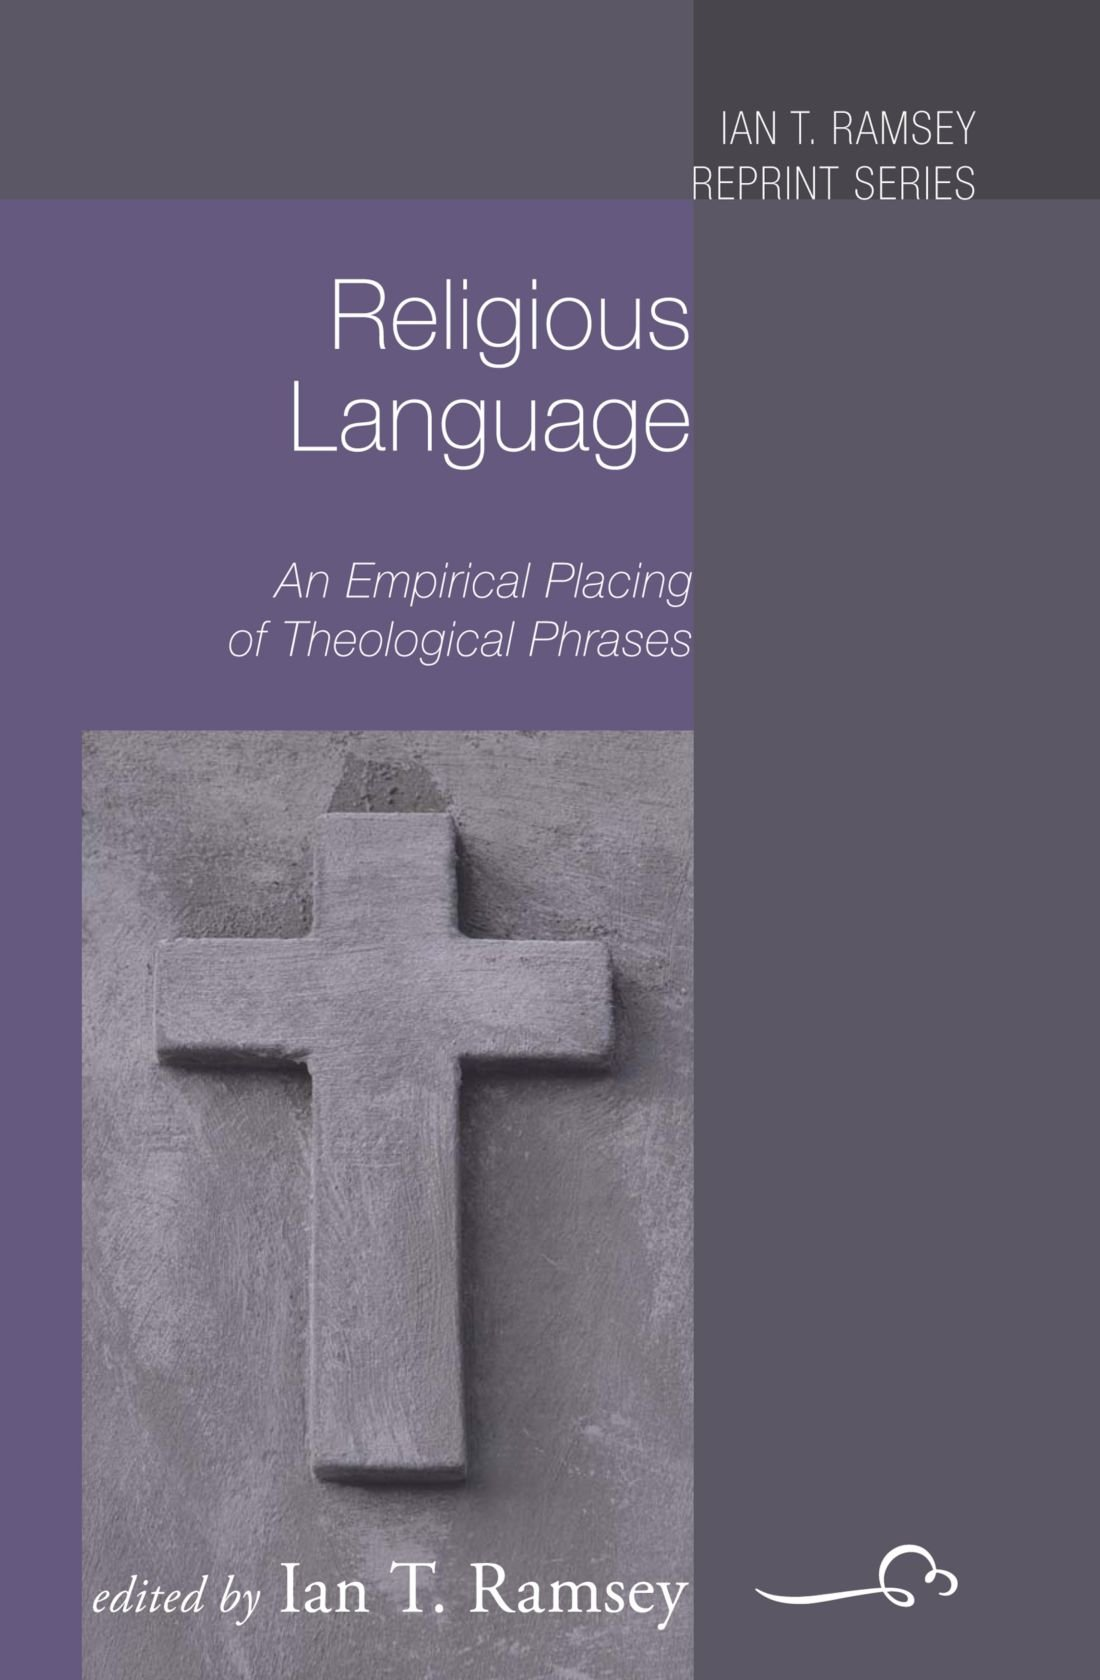 Religious Language: An Empirical Placing of Theological Phrases (Ian T. Ramsey Reprint)